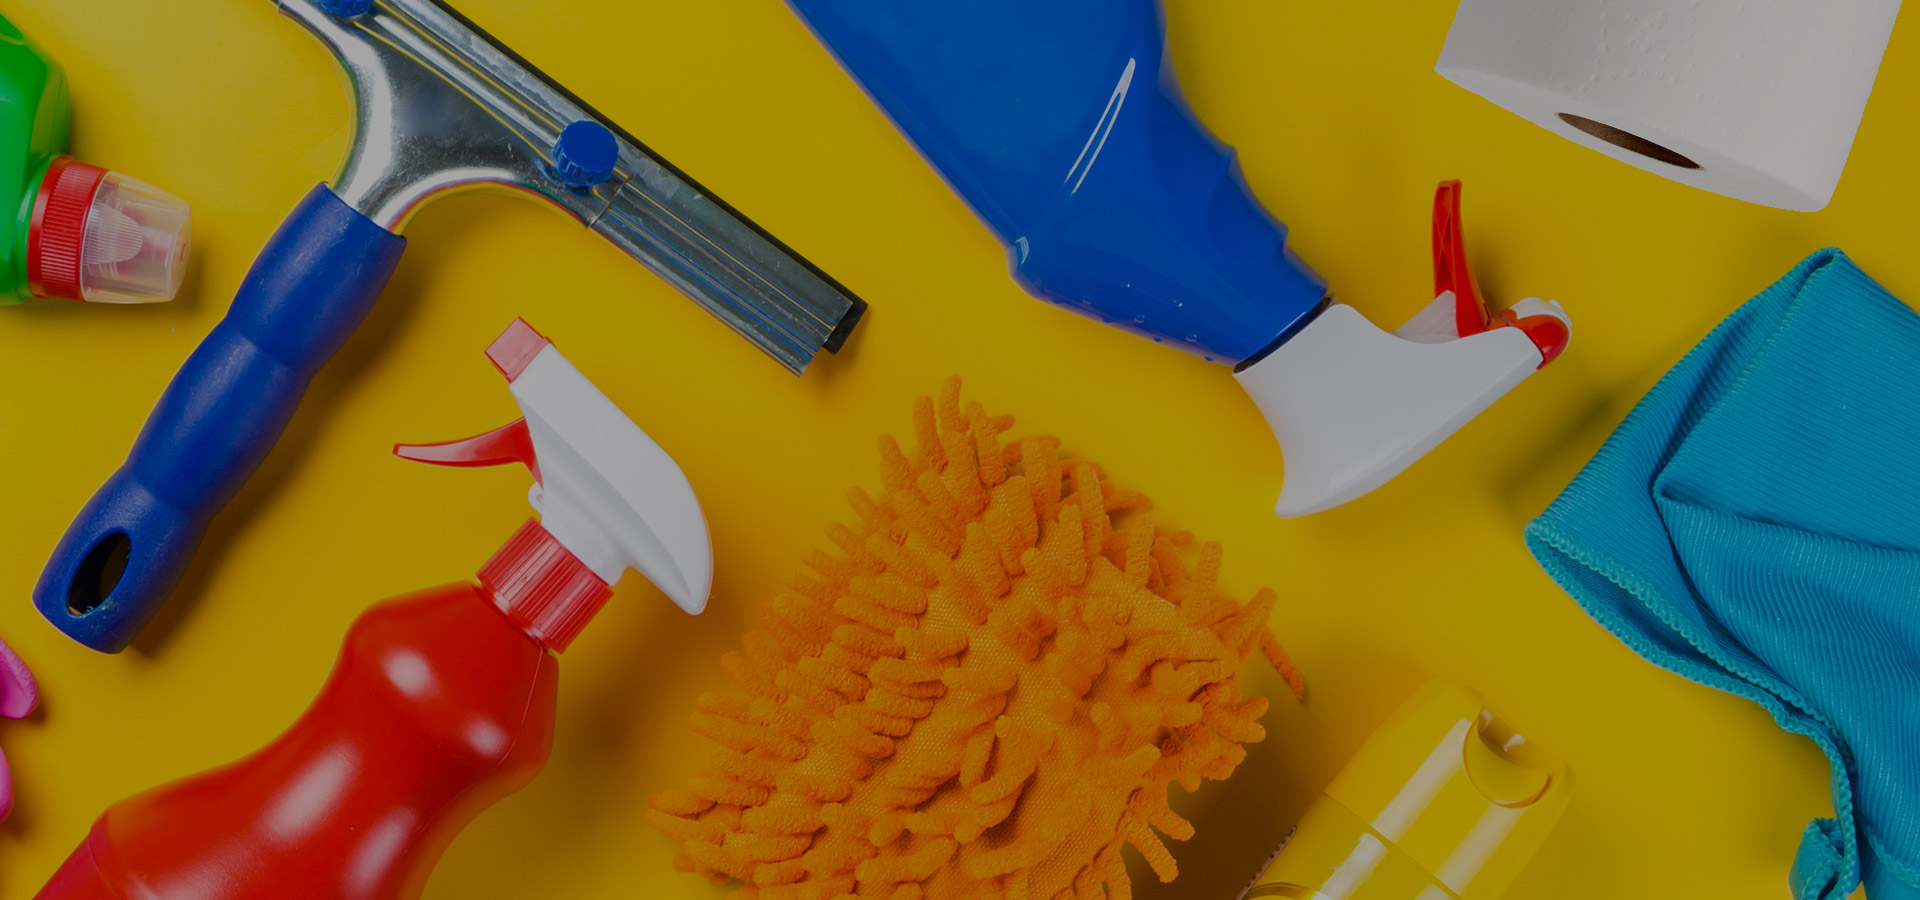 Janitor header background products